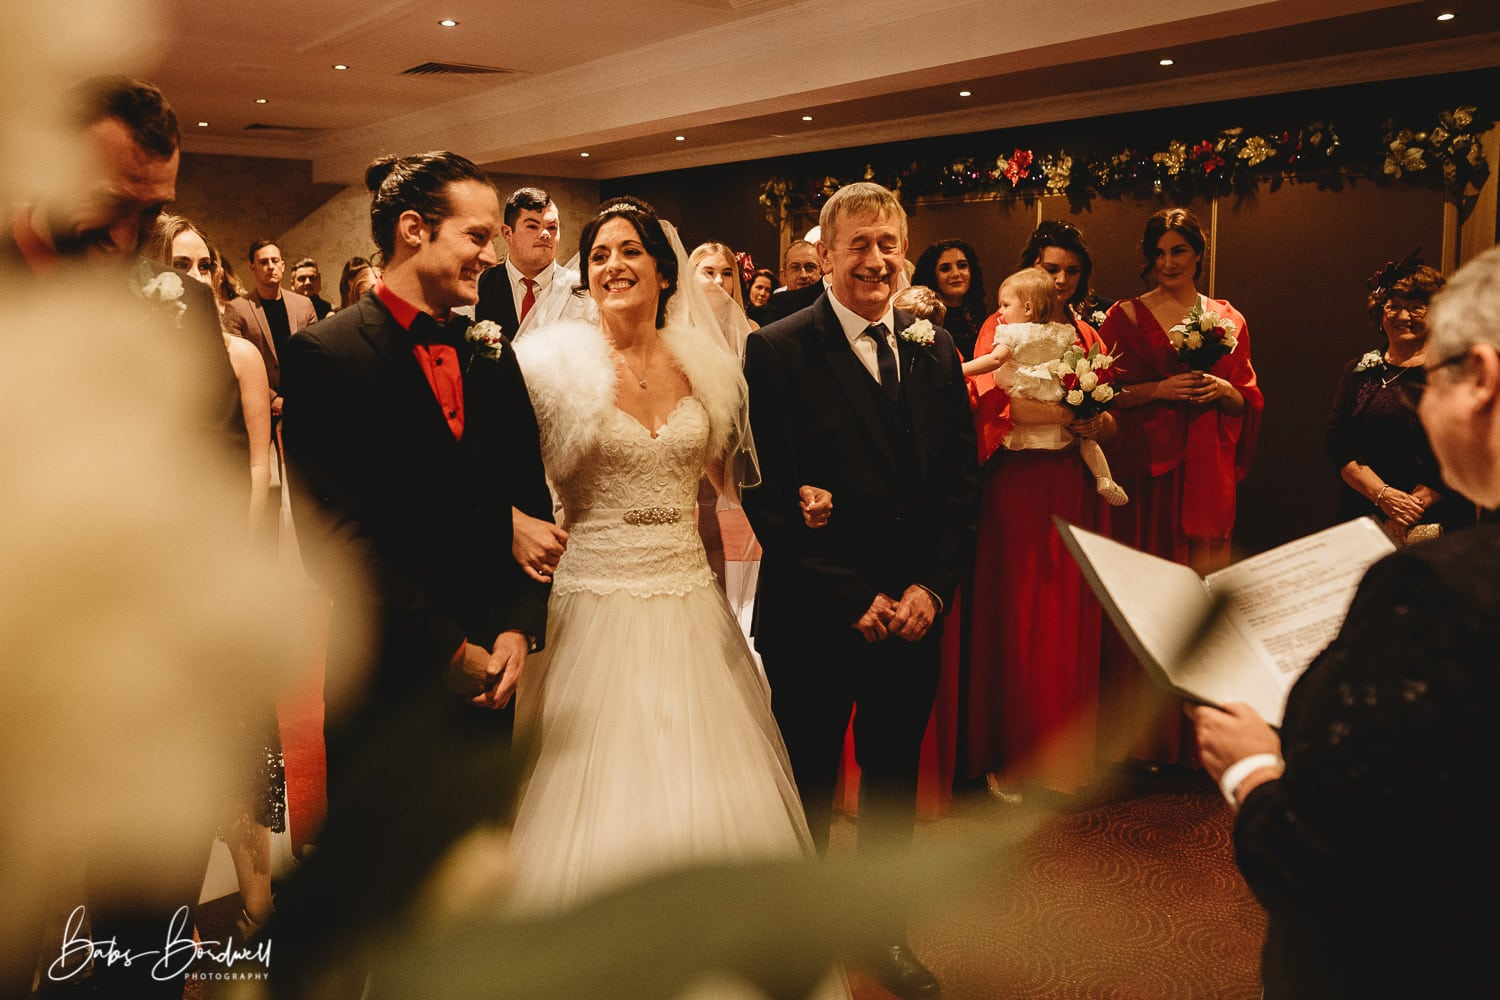 bride happily smiling at her groom while holding her father's arm